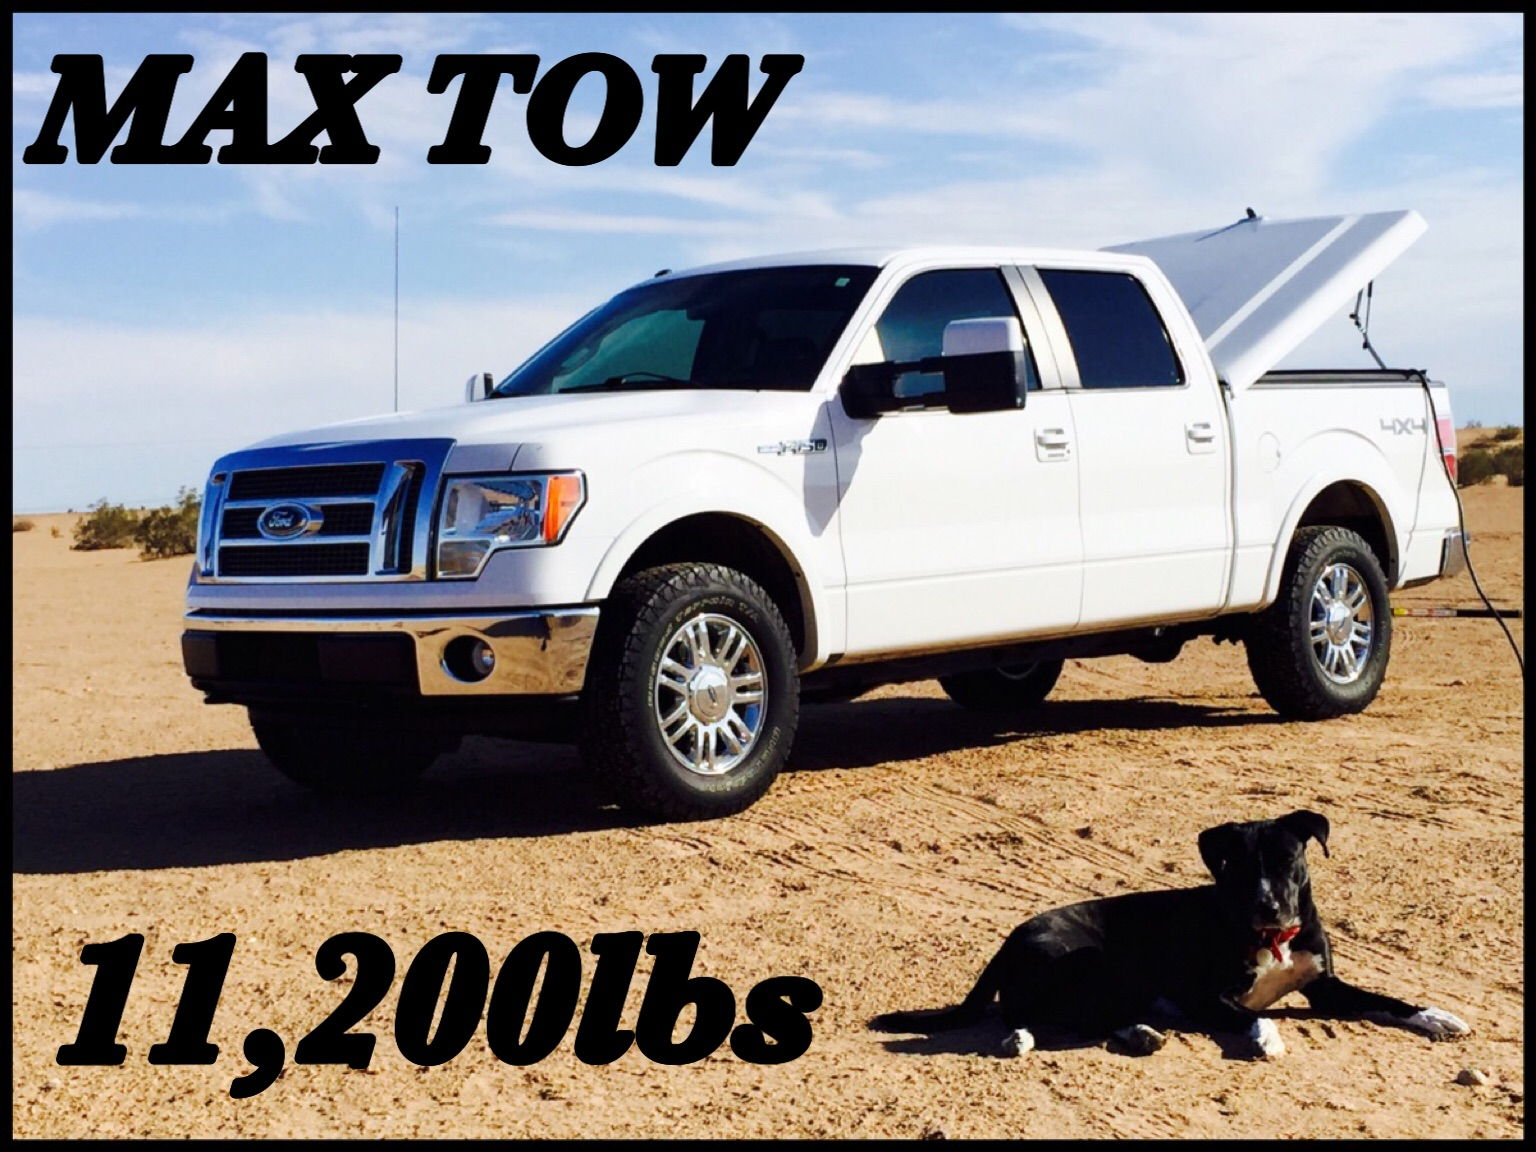 southwest 2010 ford f 150 screw lariat max tow ford f150 forum community of ford truck fans. Black Bedroom Furniture Sets. Home Design Ideas